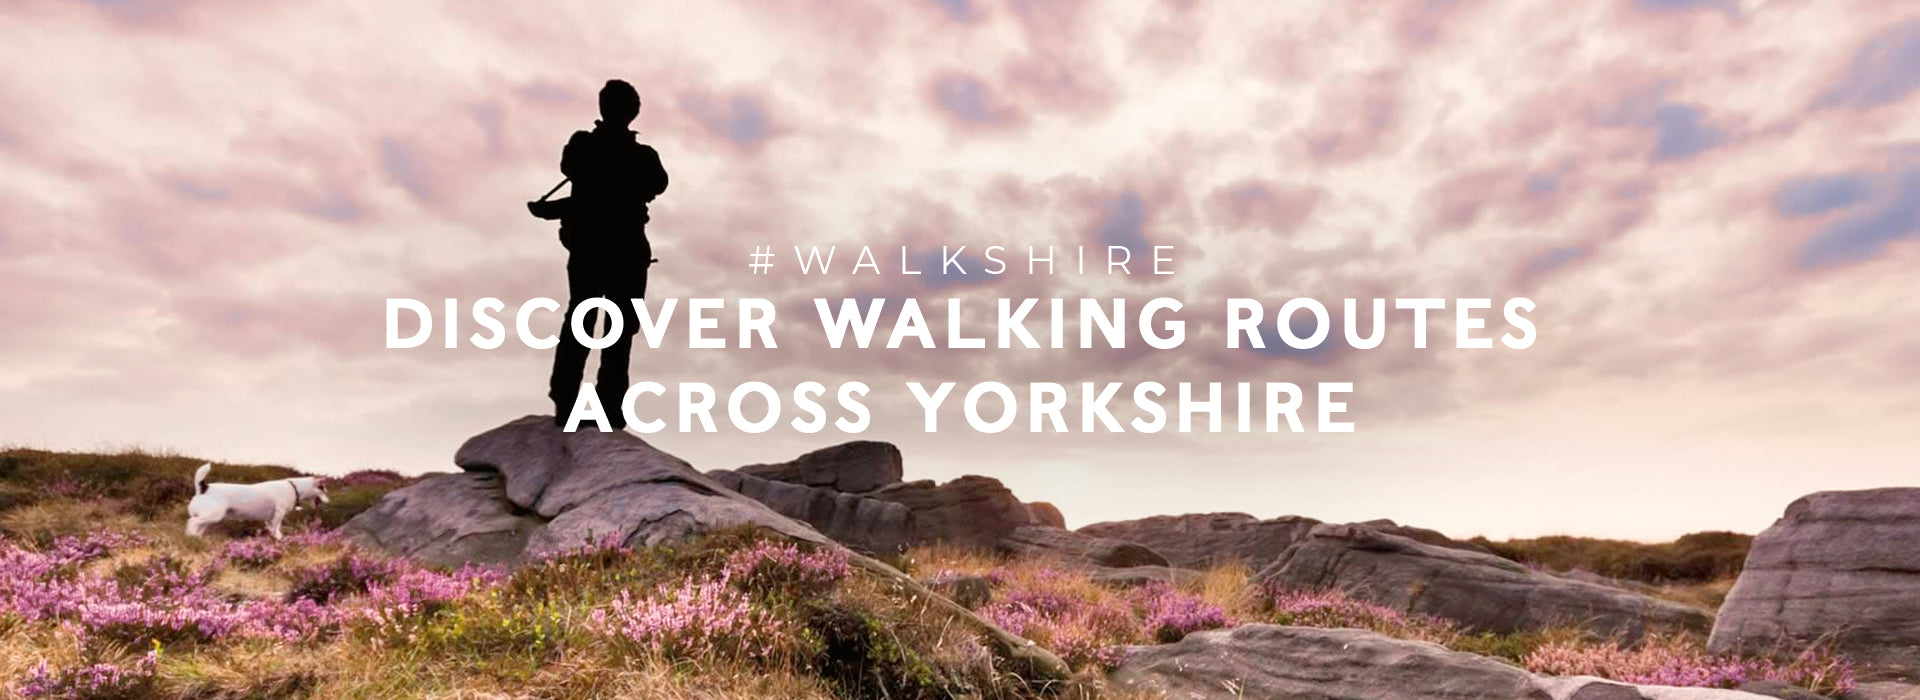 Discover walking routes across Yorkshire